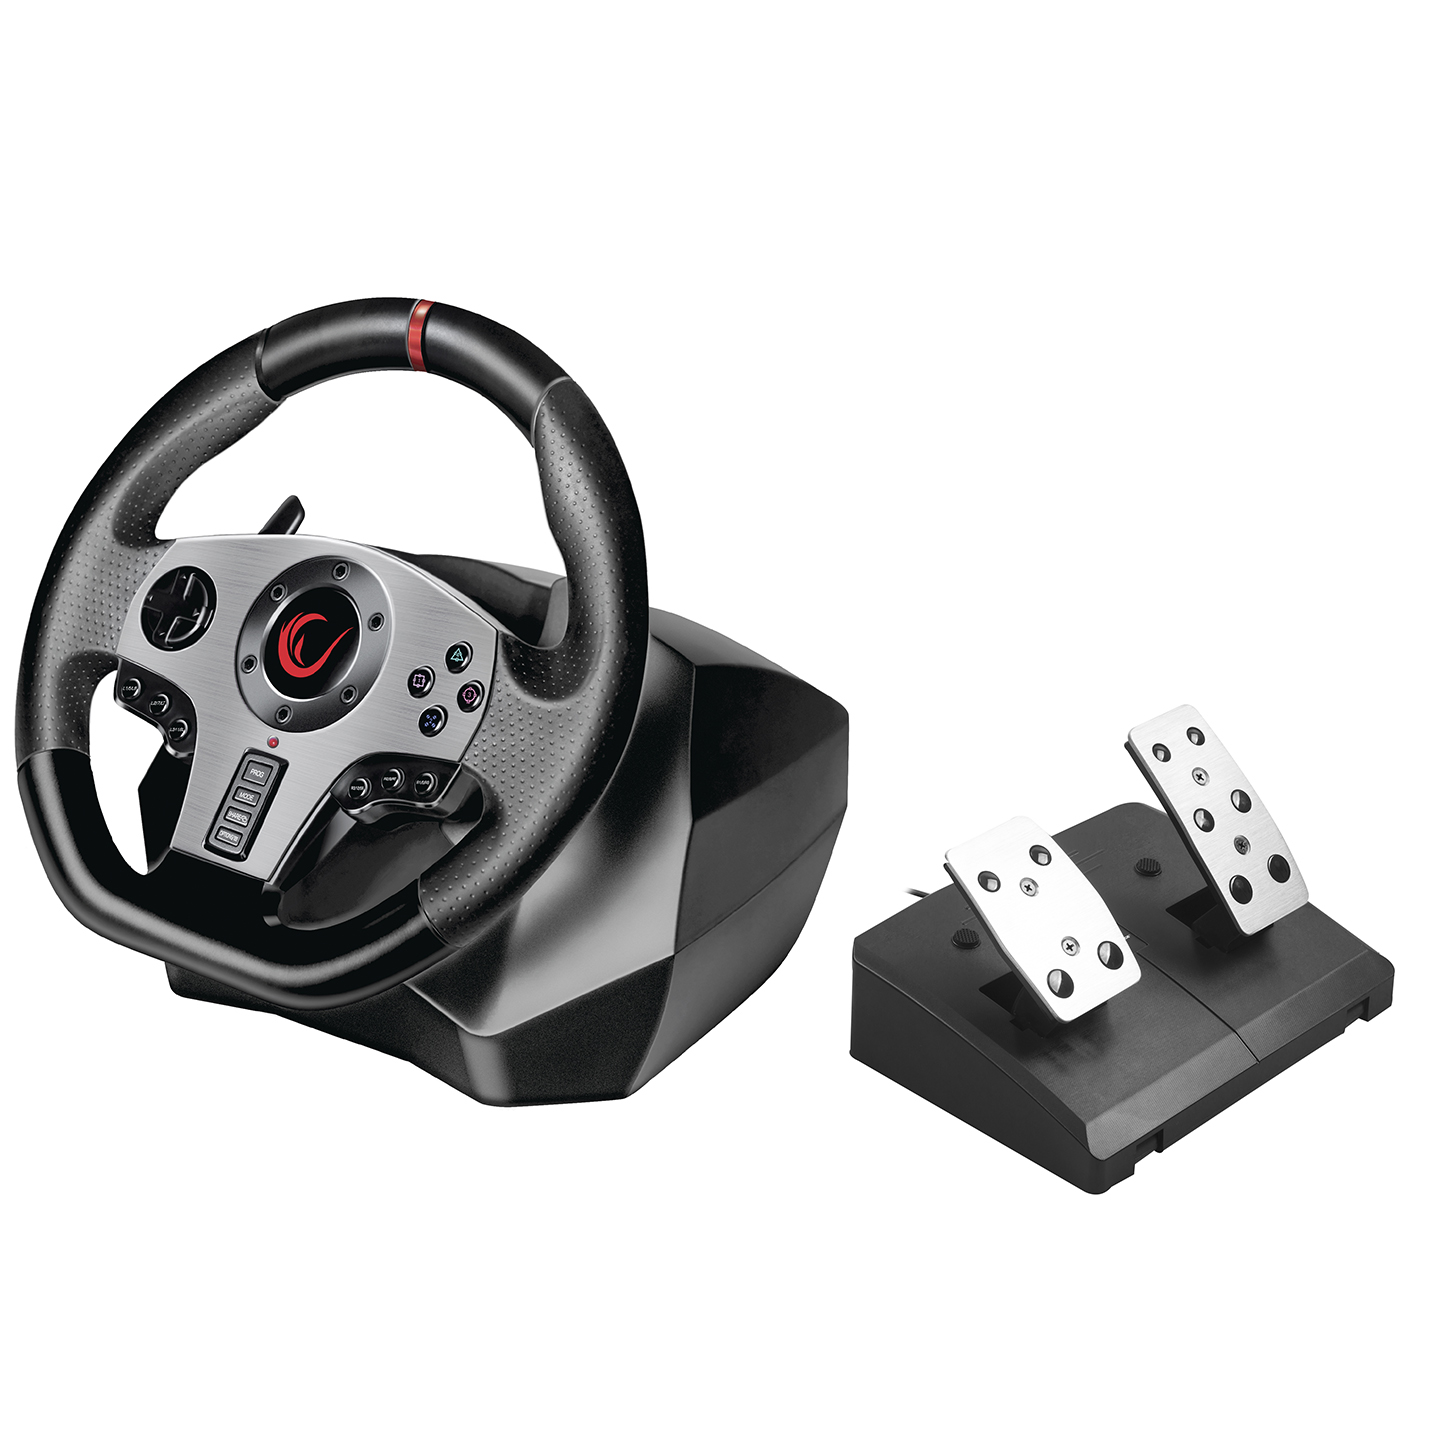 Rampage V900-S PS3 / PS4 / PC / XBOXONE / XBOX360 SWITCH 6 in 1 Pedal Gaming Racing/Steering Wheel